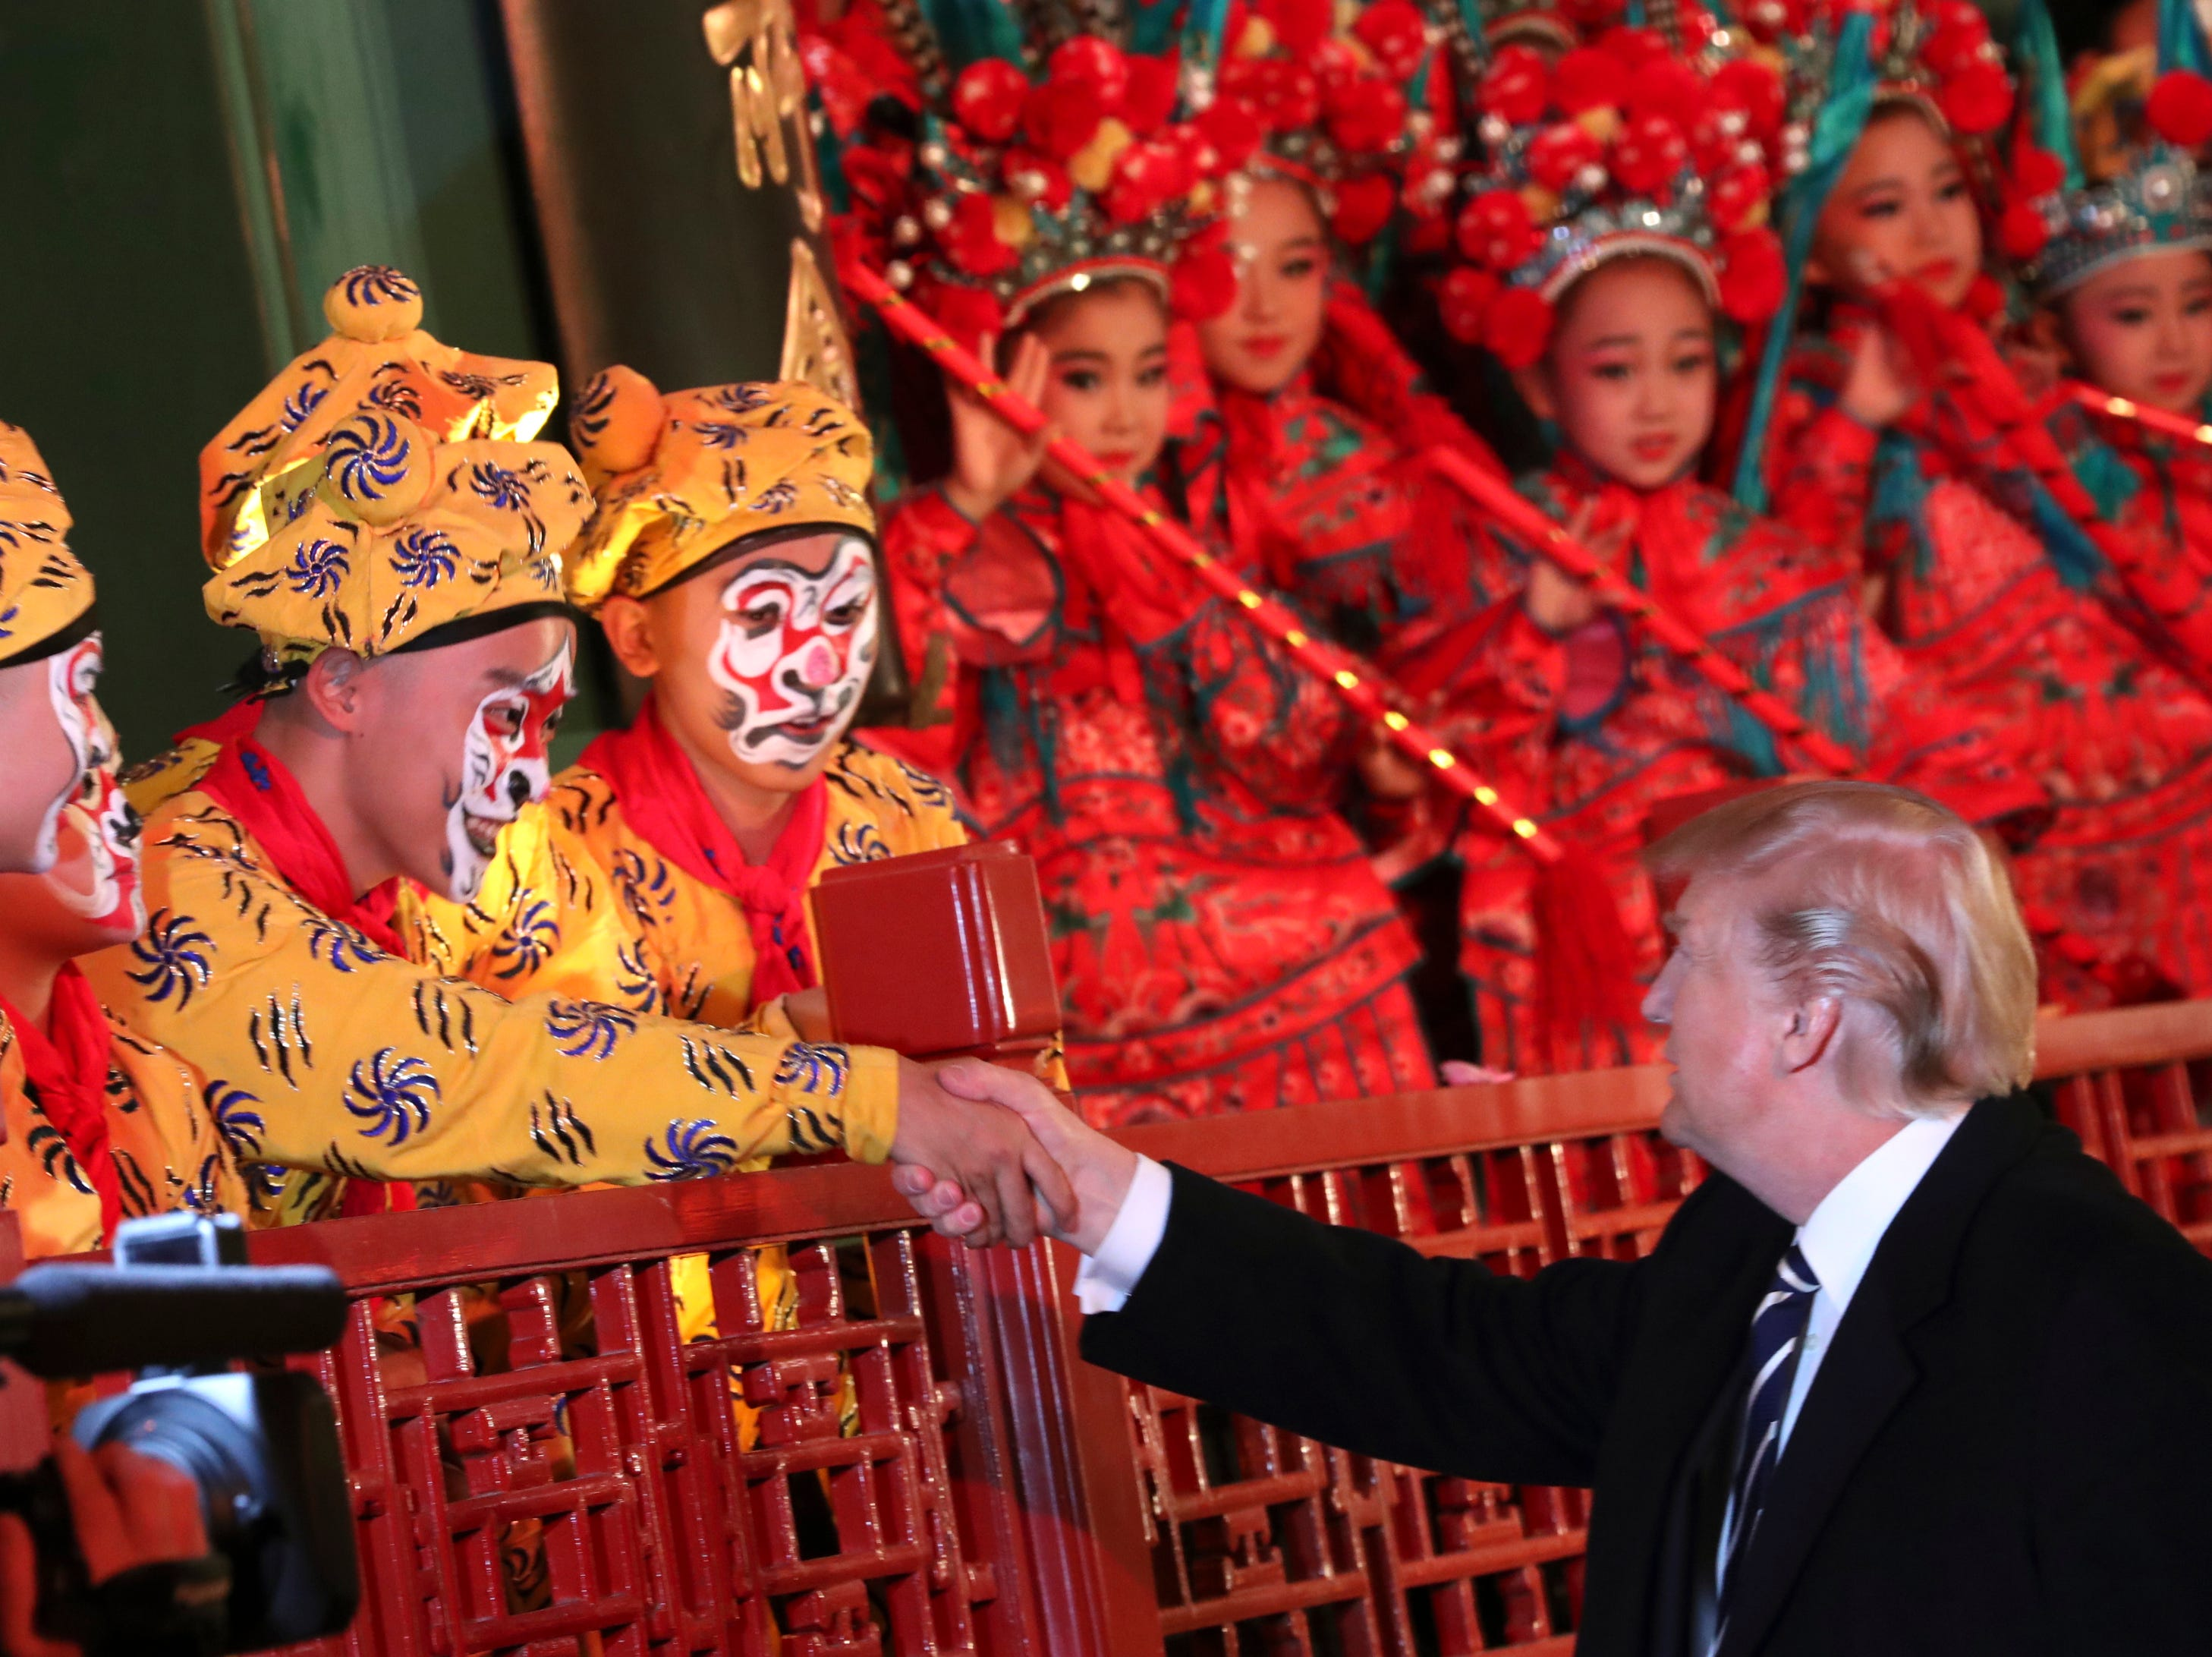 President Trump shakes hands with an opera performer at the Forbidden City, on Nov. 8, 2017, in Beijing, China.